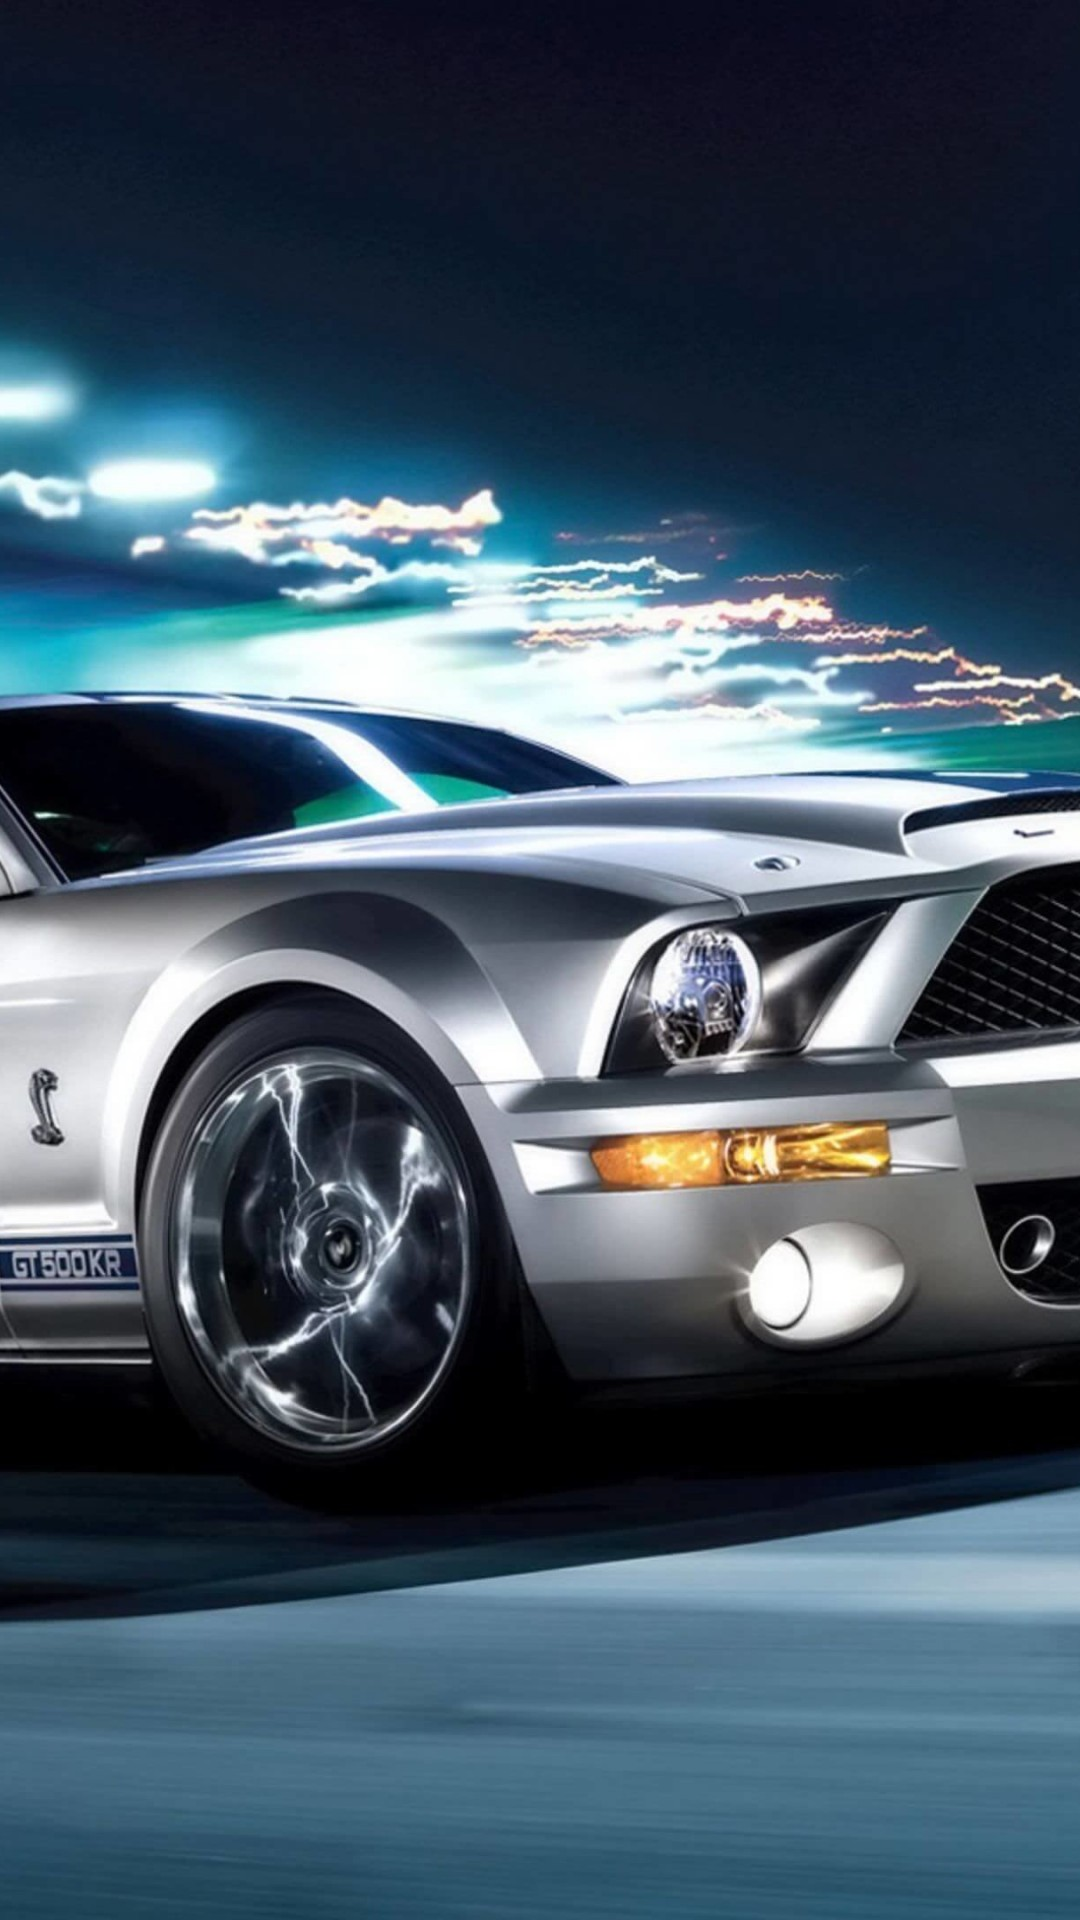 Ford Mustang Shelby GT500KR Wallpaper for SAMSUNG Galaxy Note 3